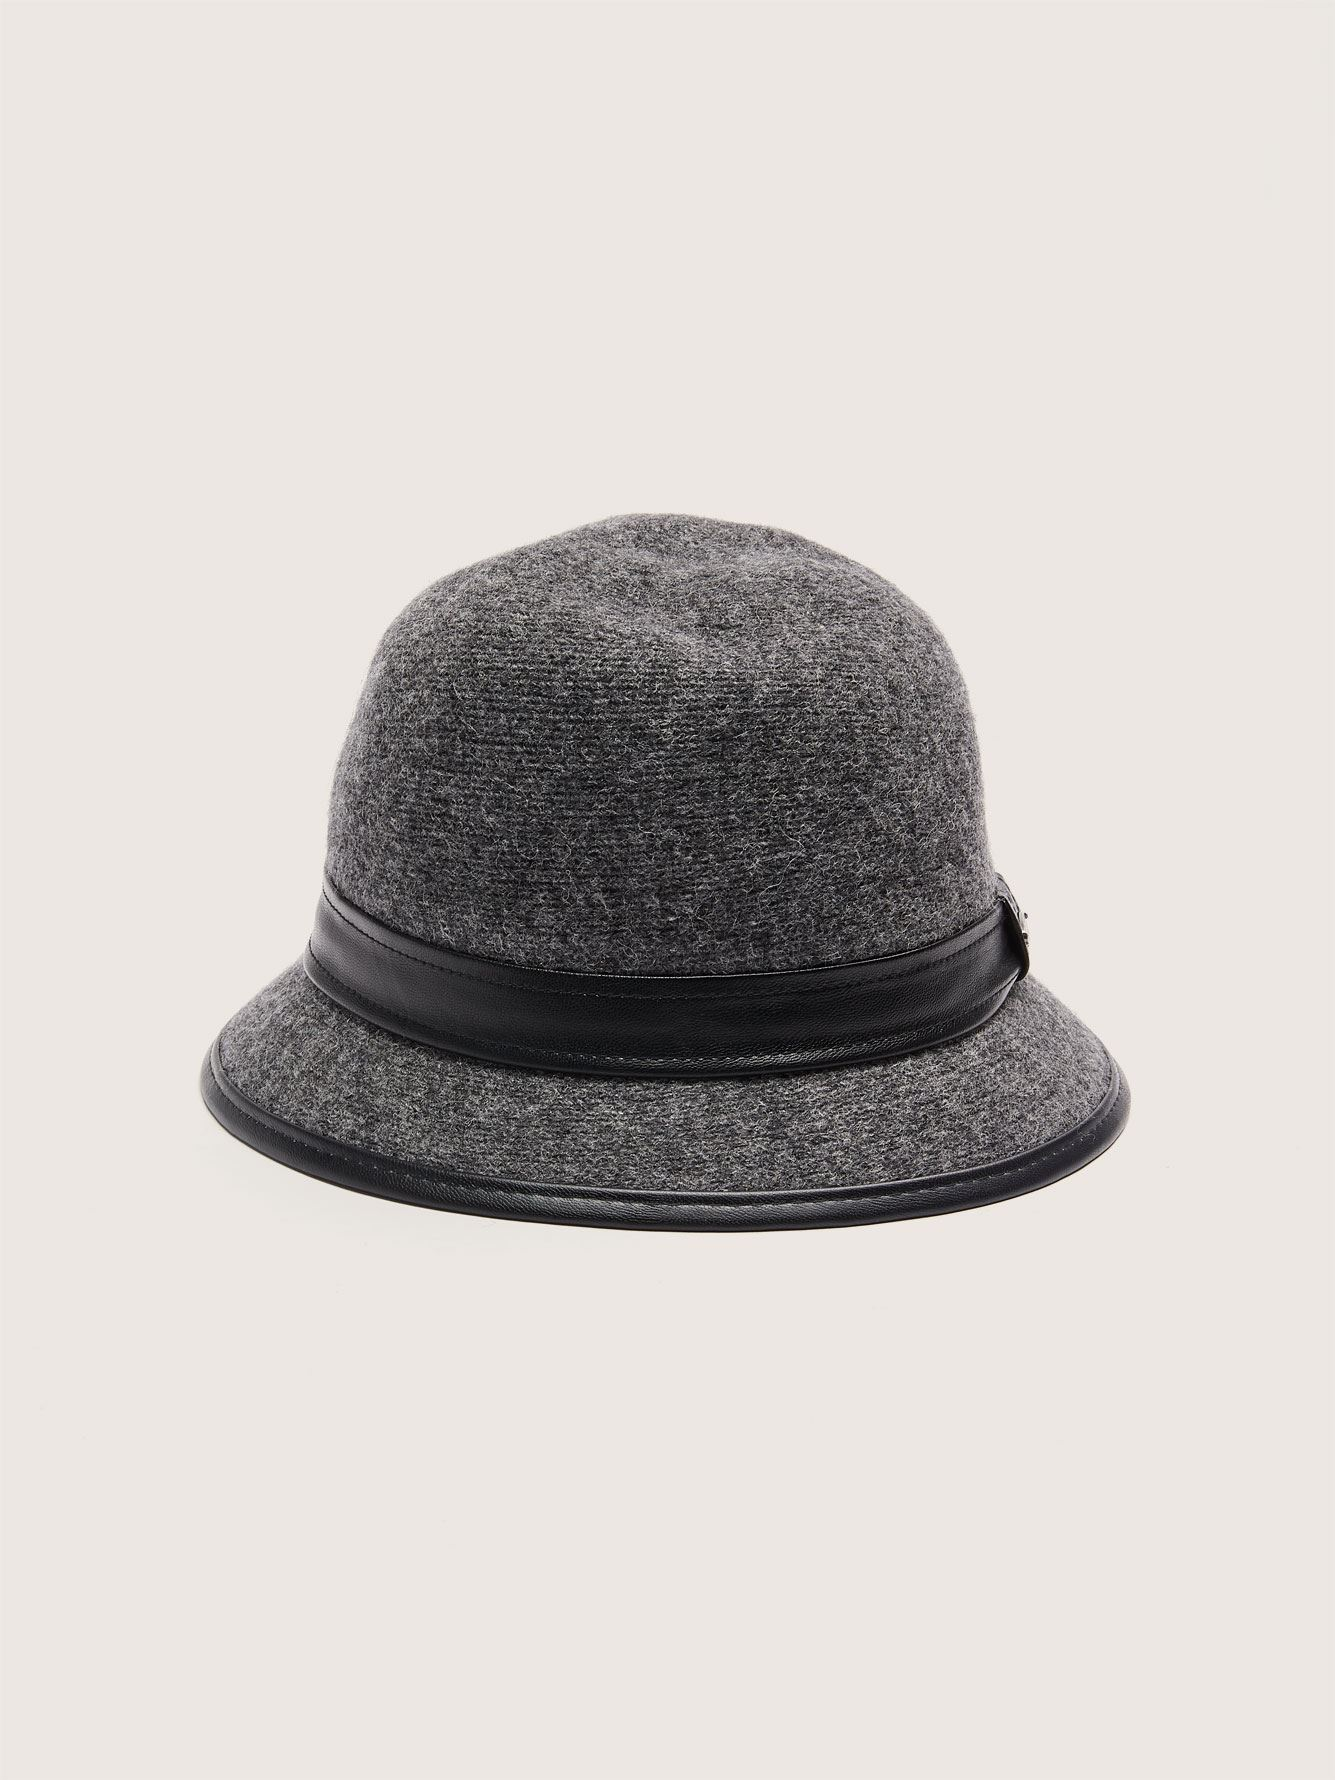 Felt Cloche Hat with Leather Ribbon - Canadian Hat